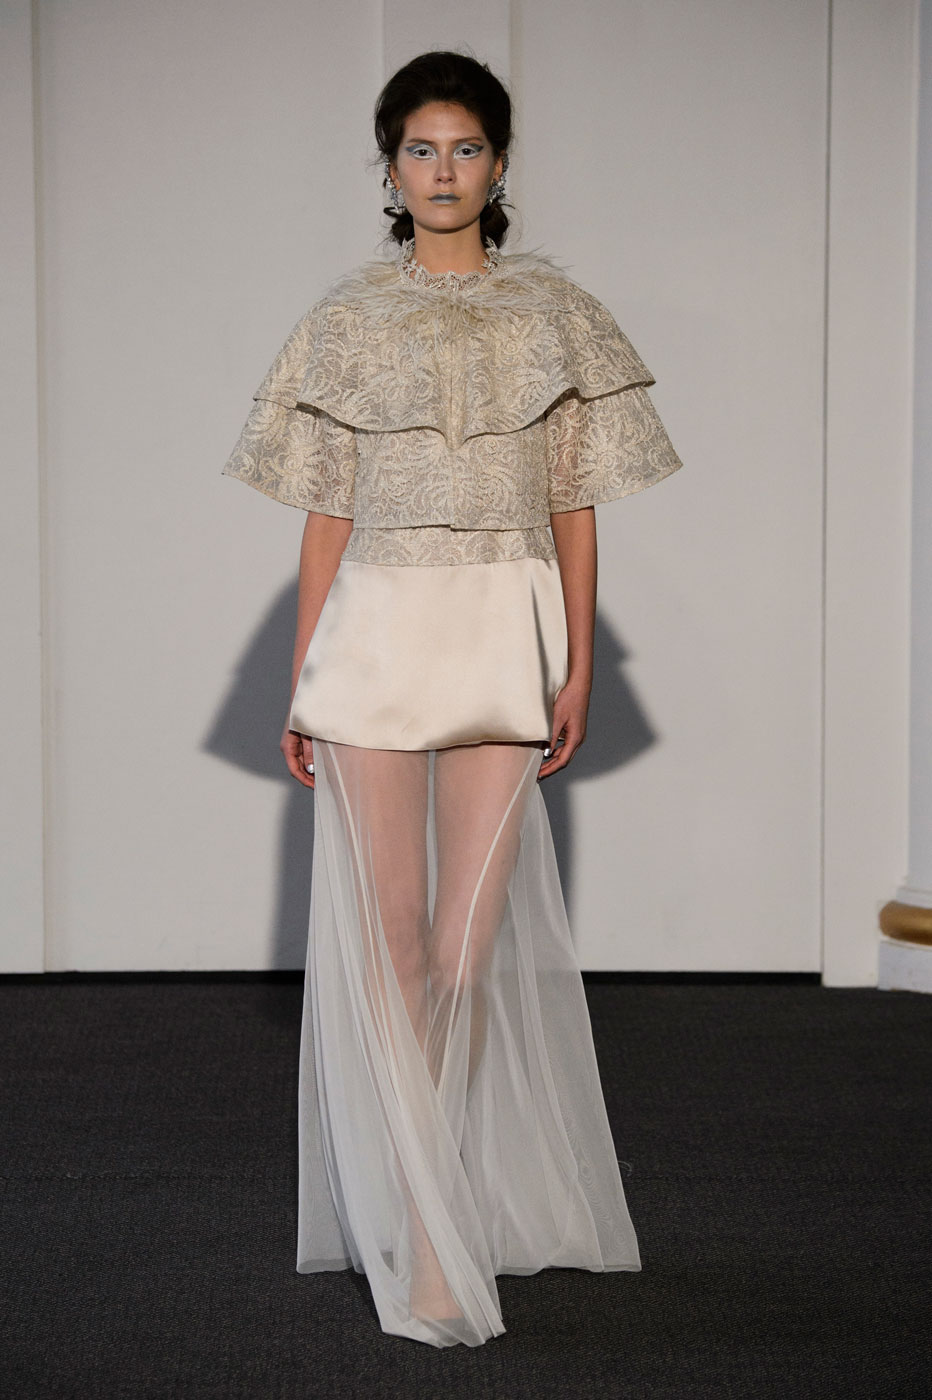 Busardi-fashion-runway-show-haute-couture-paris-spring-2015-the-impression-61